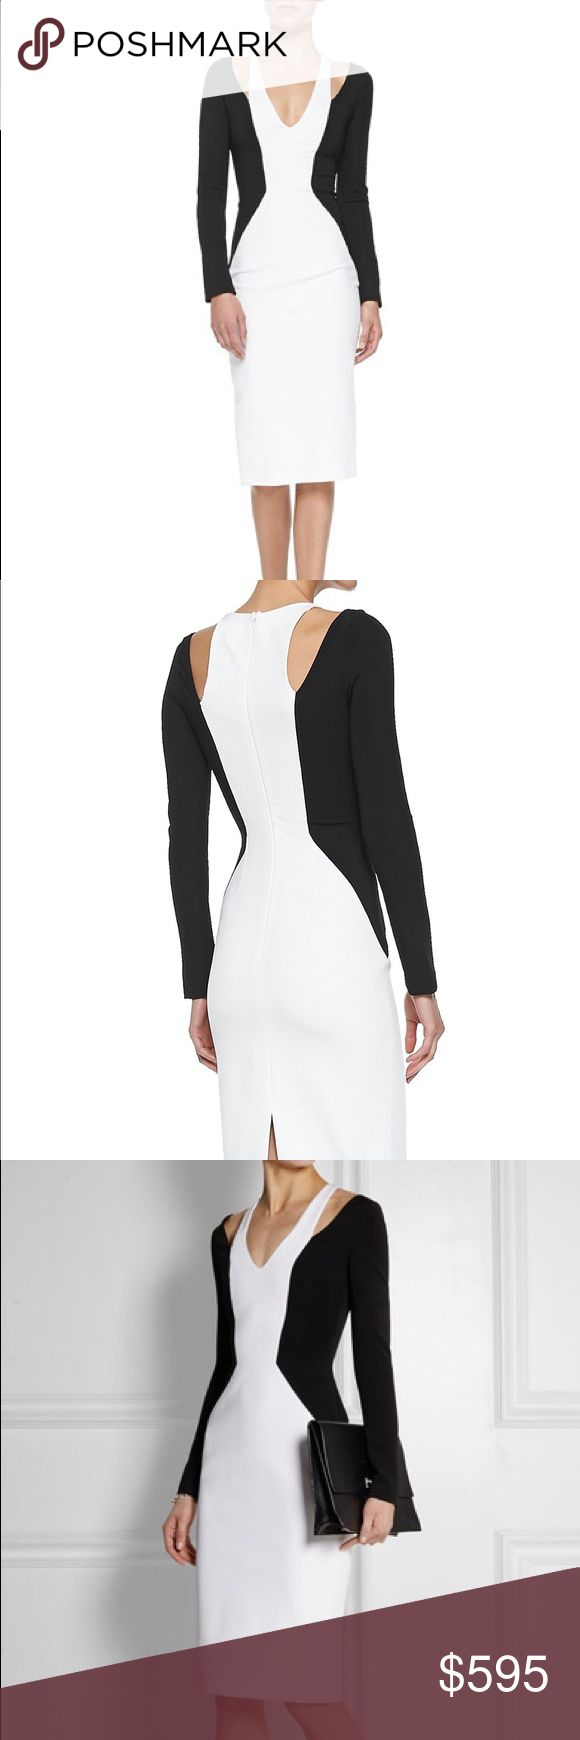 """Cushnie et oche Power pencil body con dress new! Cushnie et Ochs colorblock jersey power pencil dress. Designer size 8. Follows modern size guide, (runs small/tight) Deep V neckline. Cold-shoulder long sleeves. Nips in at natural waist. Straight skirt with back slit; straight hem. Hidden back zip. Sheath silhouette. Viscose/nylon/spandex; silk/spandex lining. Made in USA.   Model's measurements first 2 images: Height 5'10""""/177cm, bust 34""""/86cm, waist 24""""/61cm, hips 35""""/89cm, dress size US 2…"""